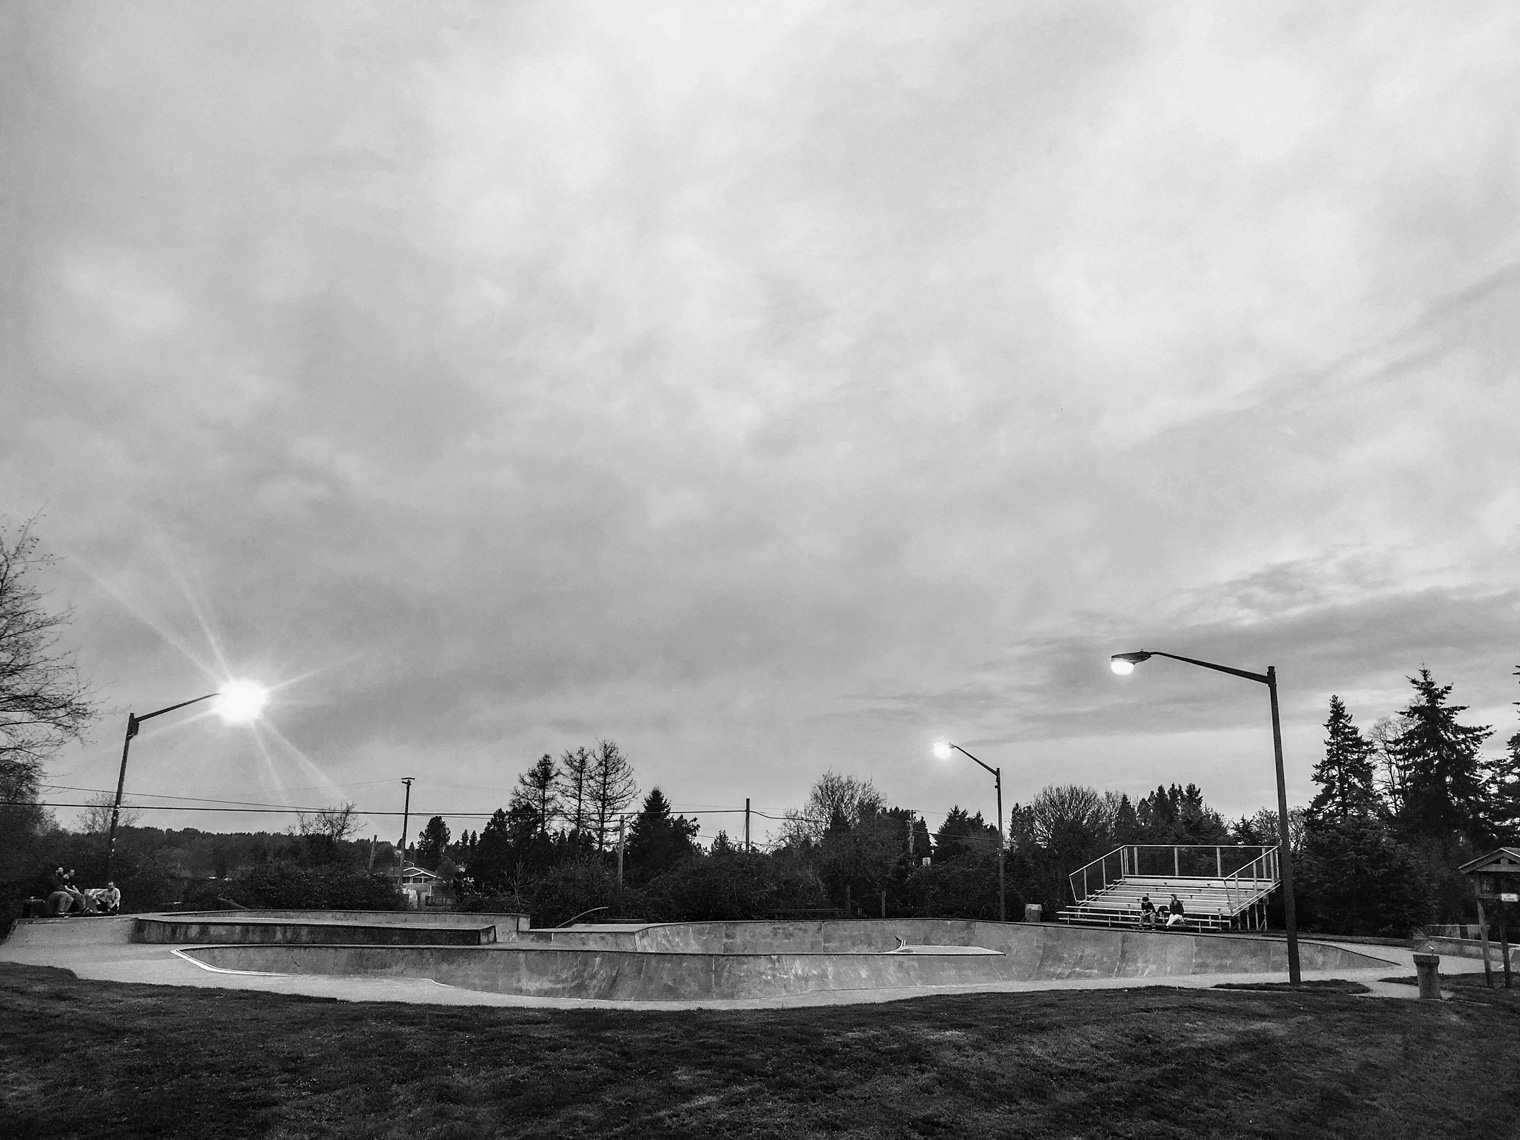 RoadTripping_SkateparkProject_Park14_Town_Retouched_Web